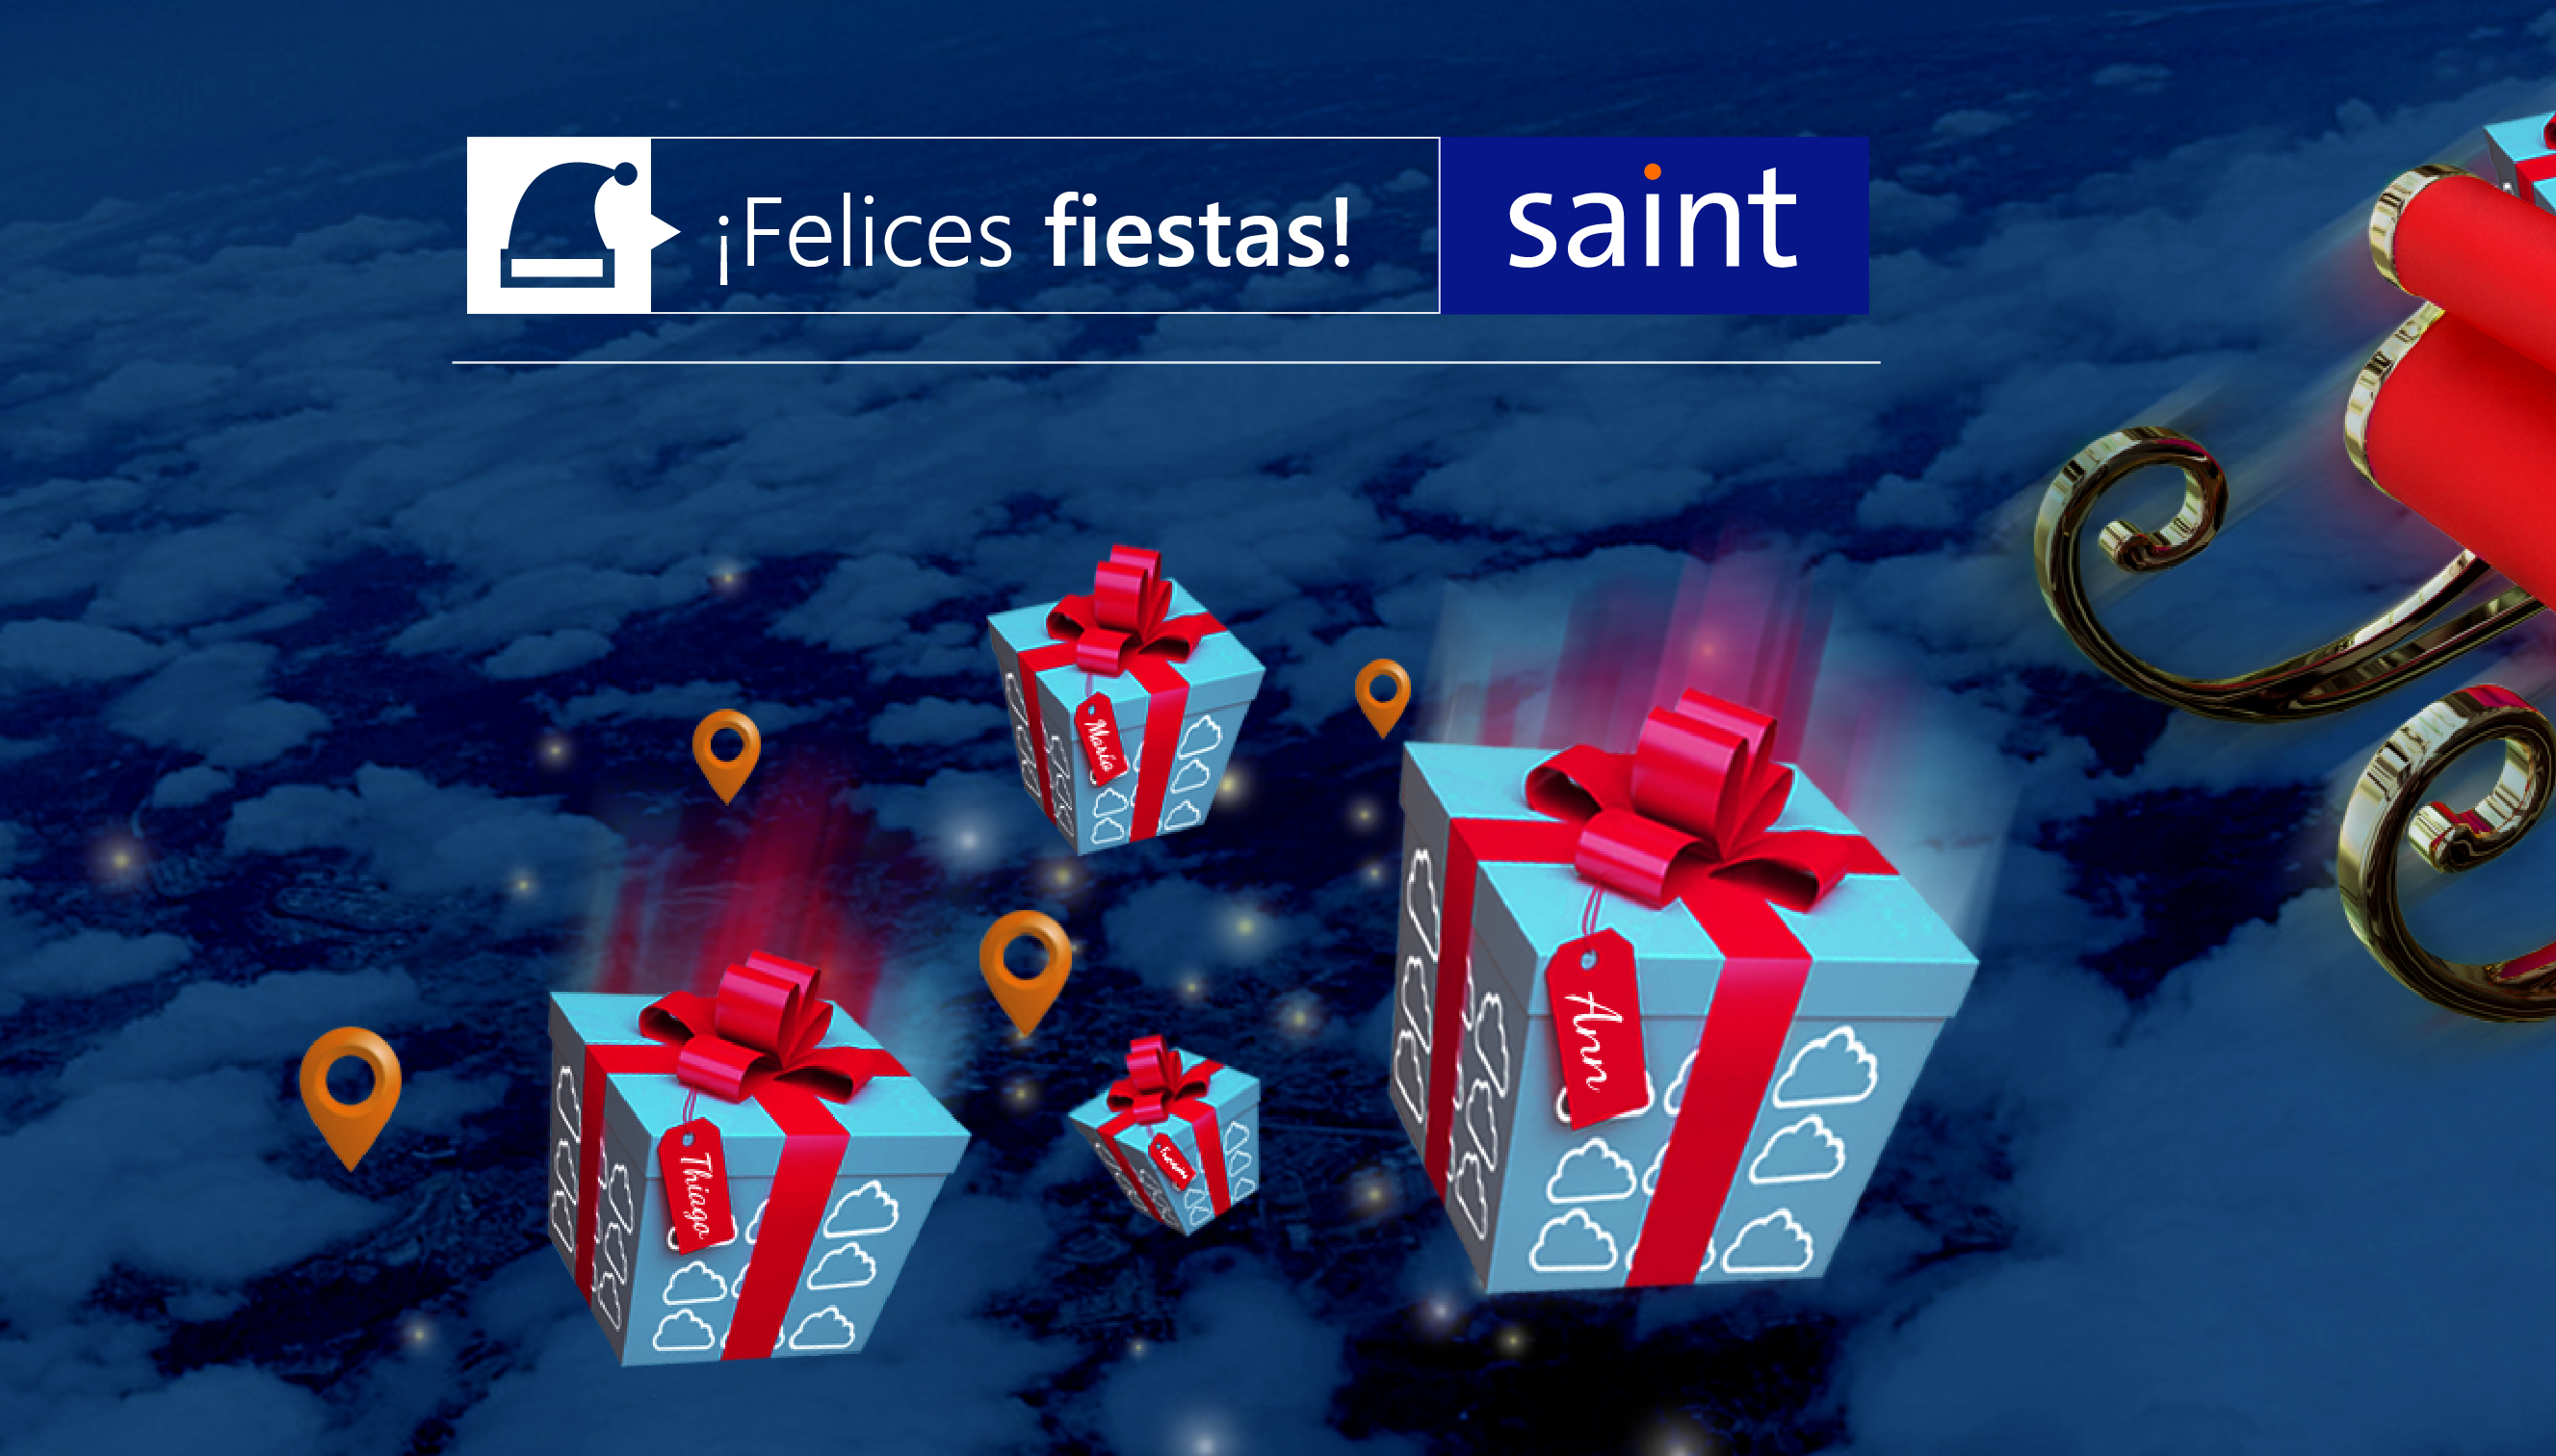 felices-fiestas-saint-02